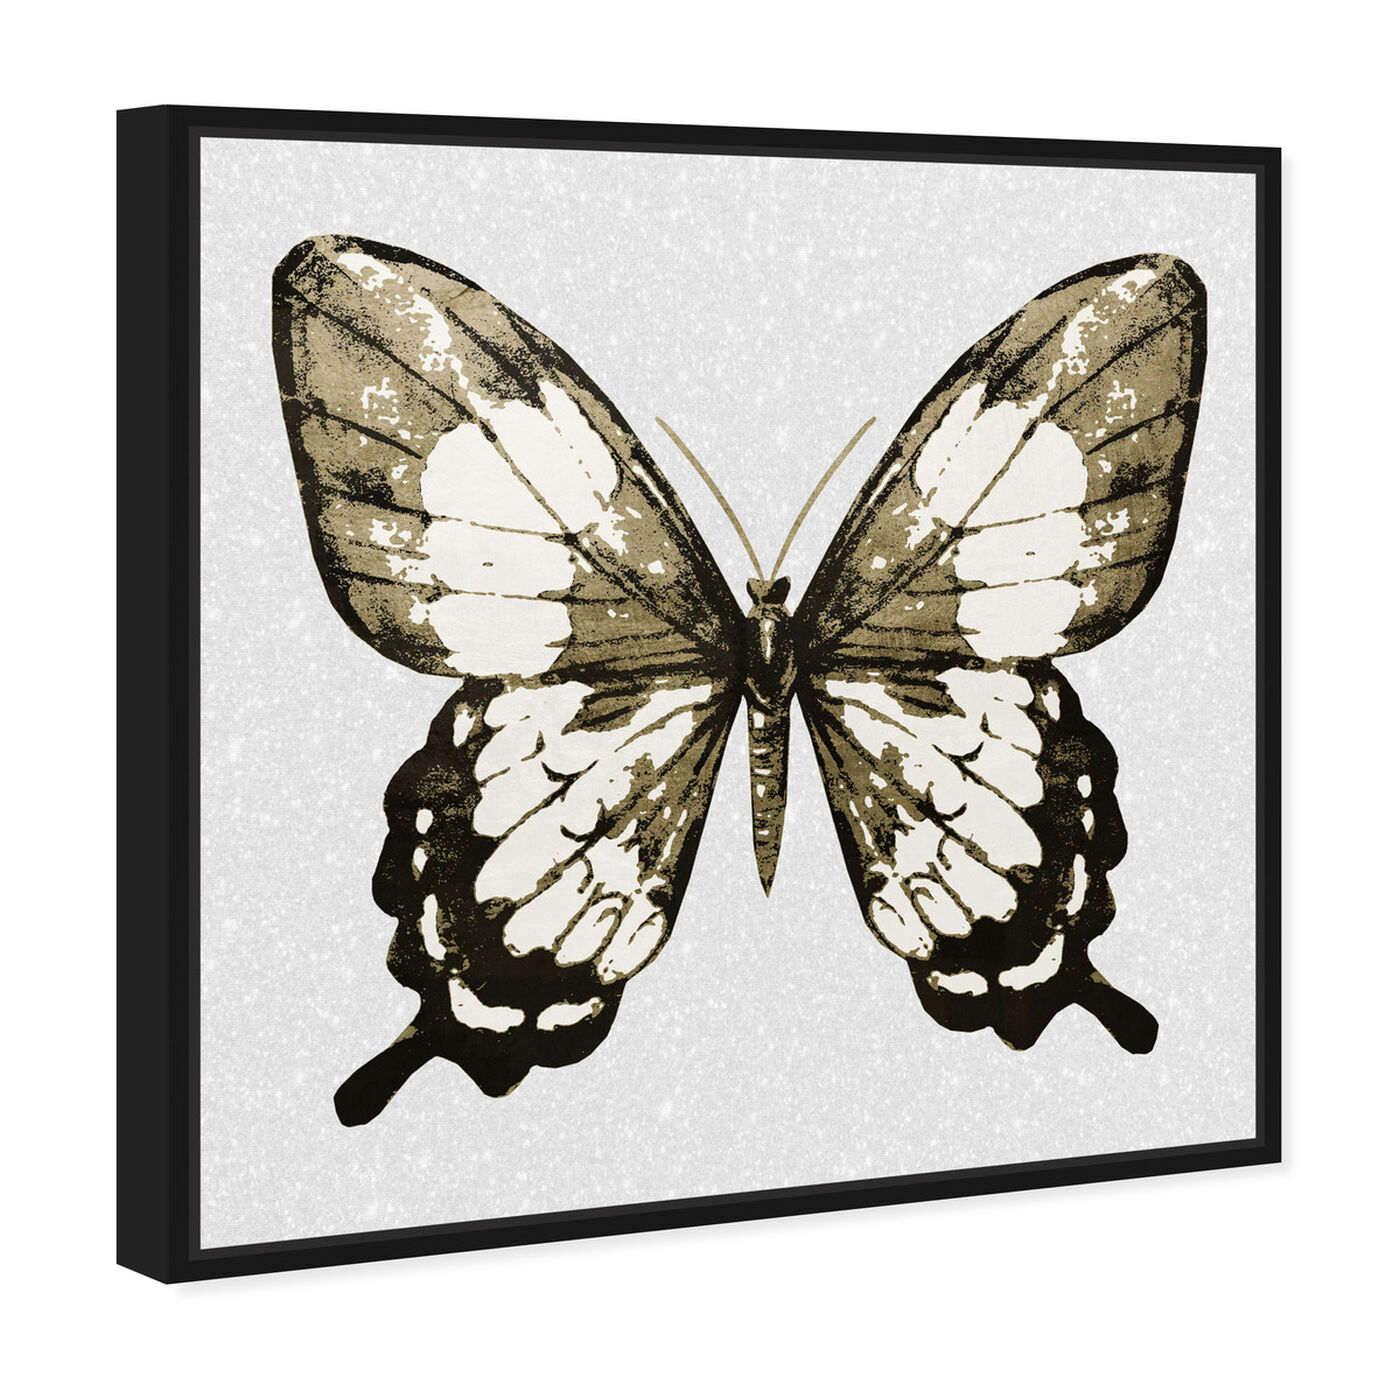 Angled view of Butterfly Gold and Black featuring animals and insects art.